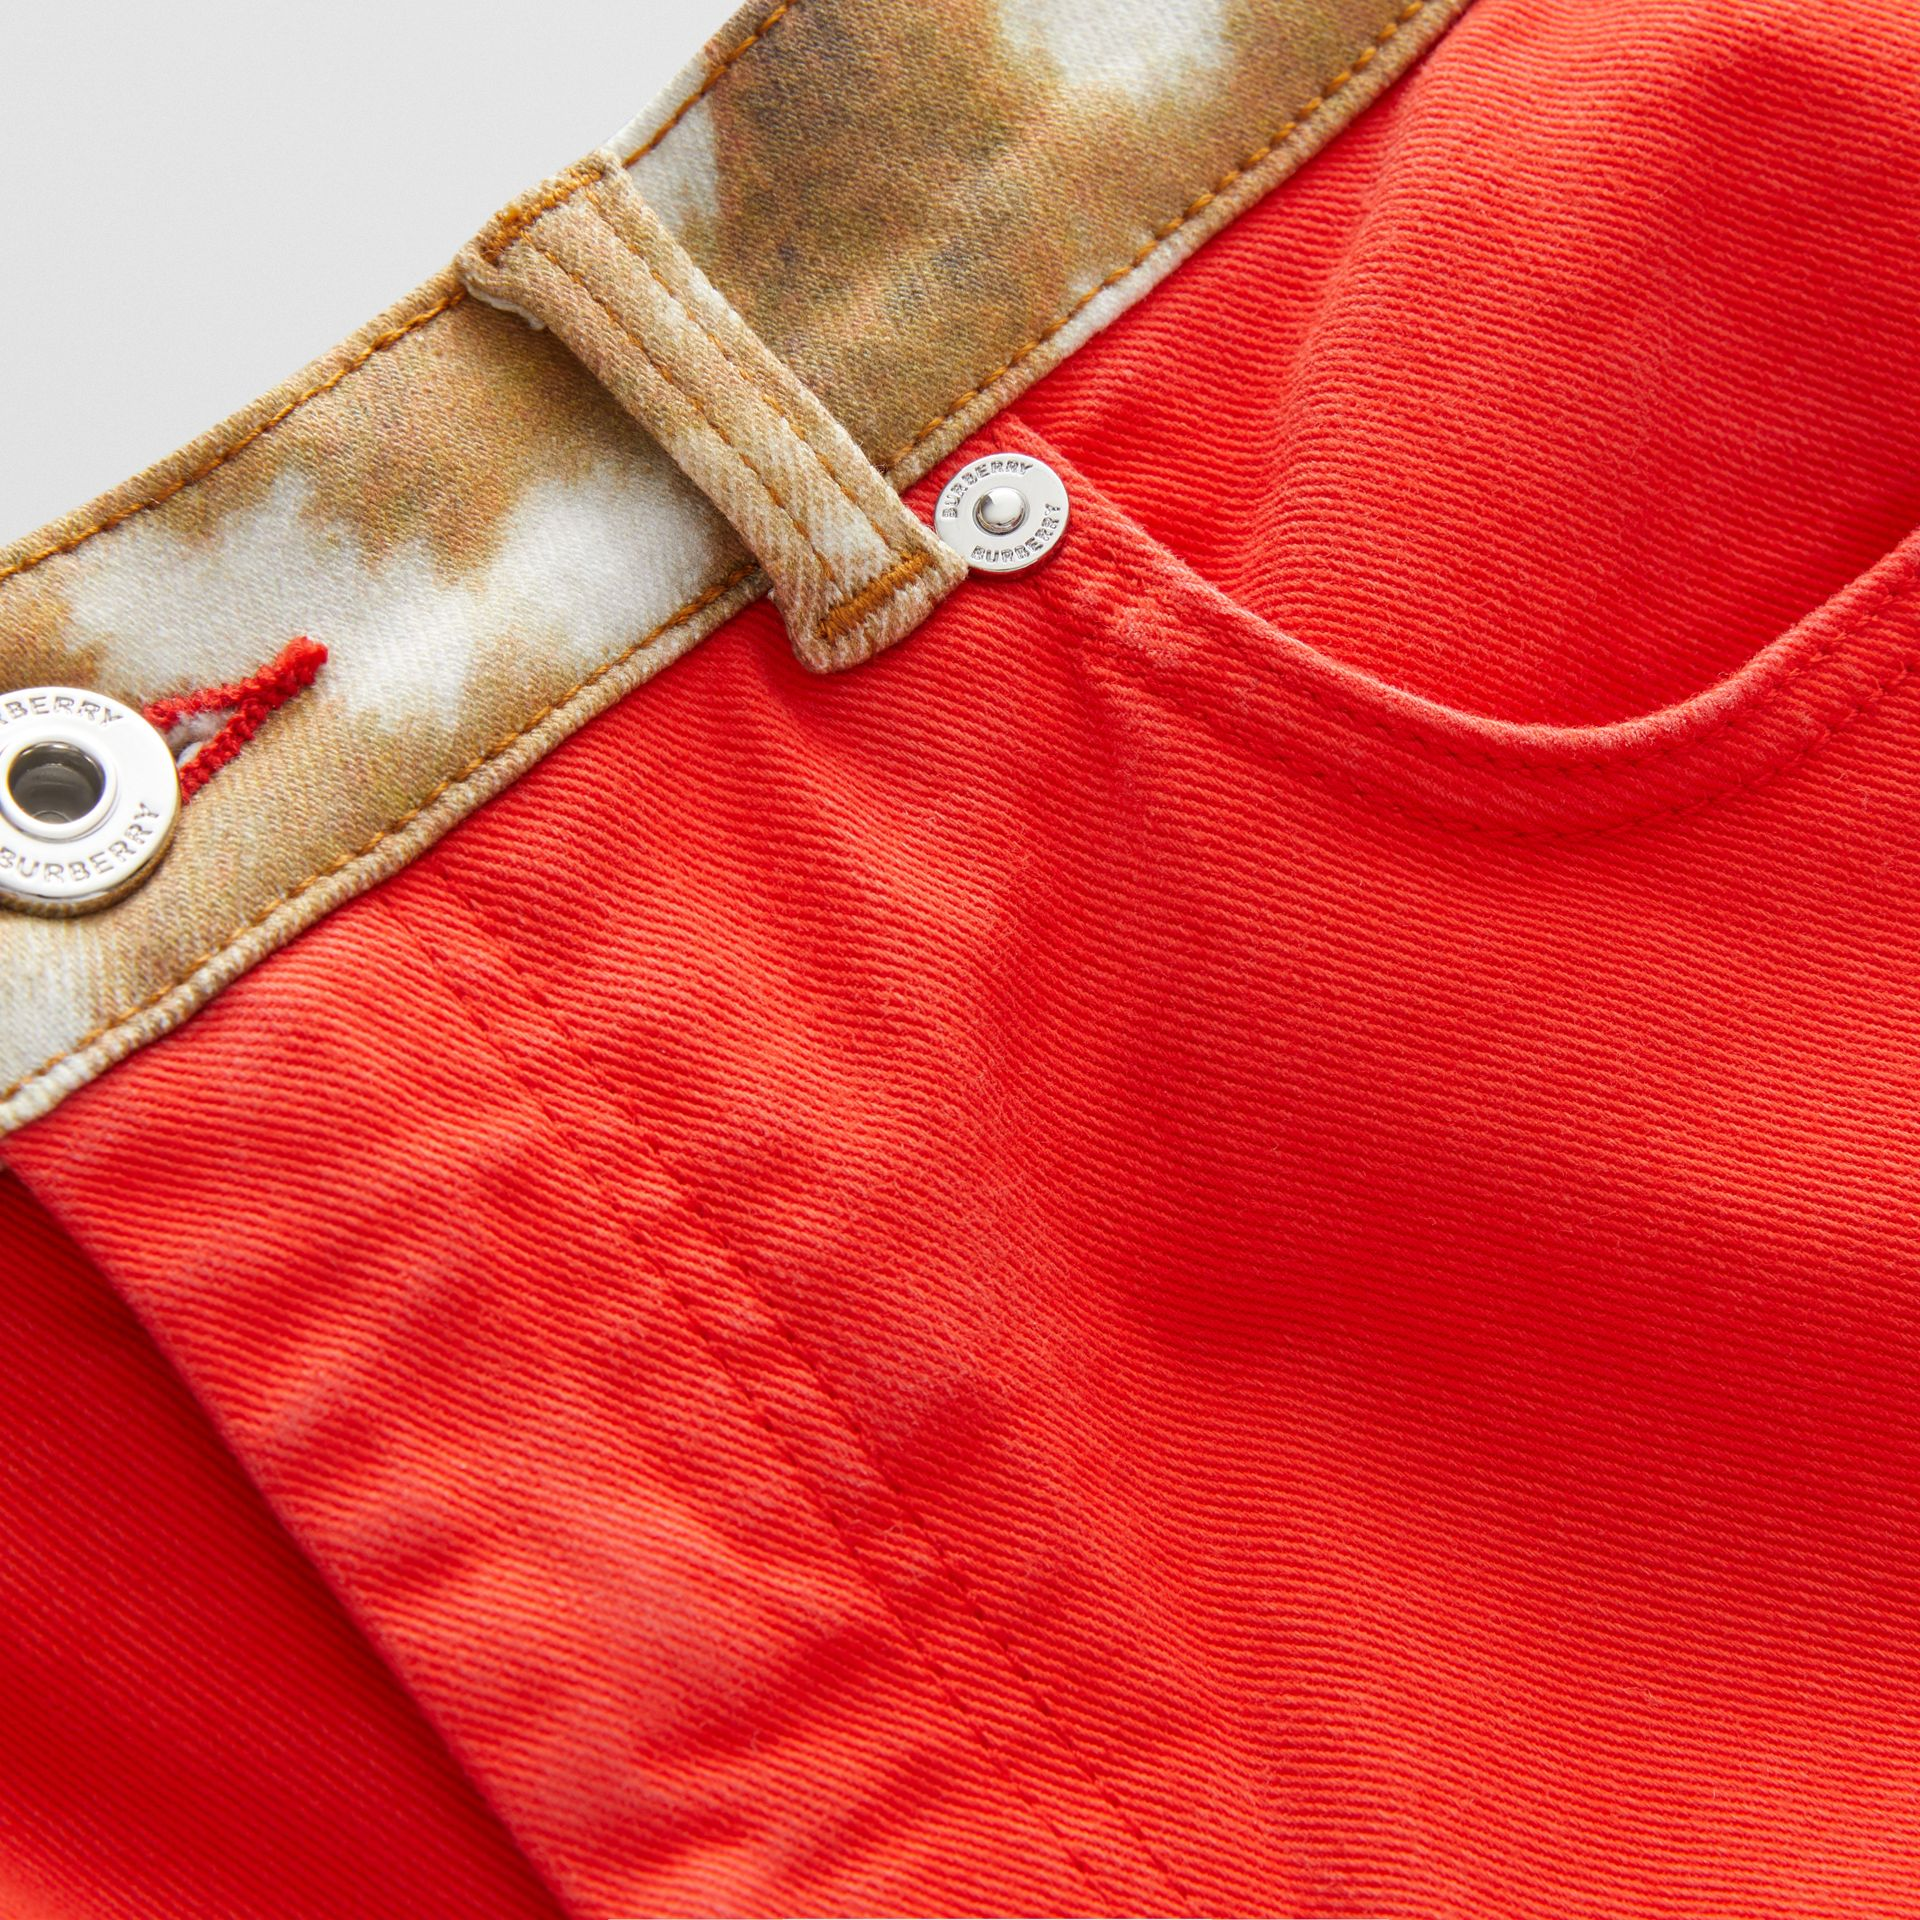 Flared Fit Deer Print Trim Japanese Denim Jeans in Bright Red | Burberry - gallery image 1